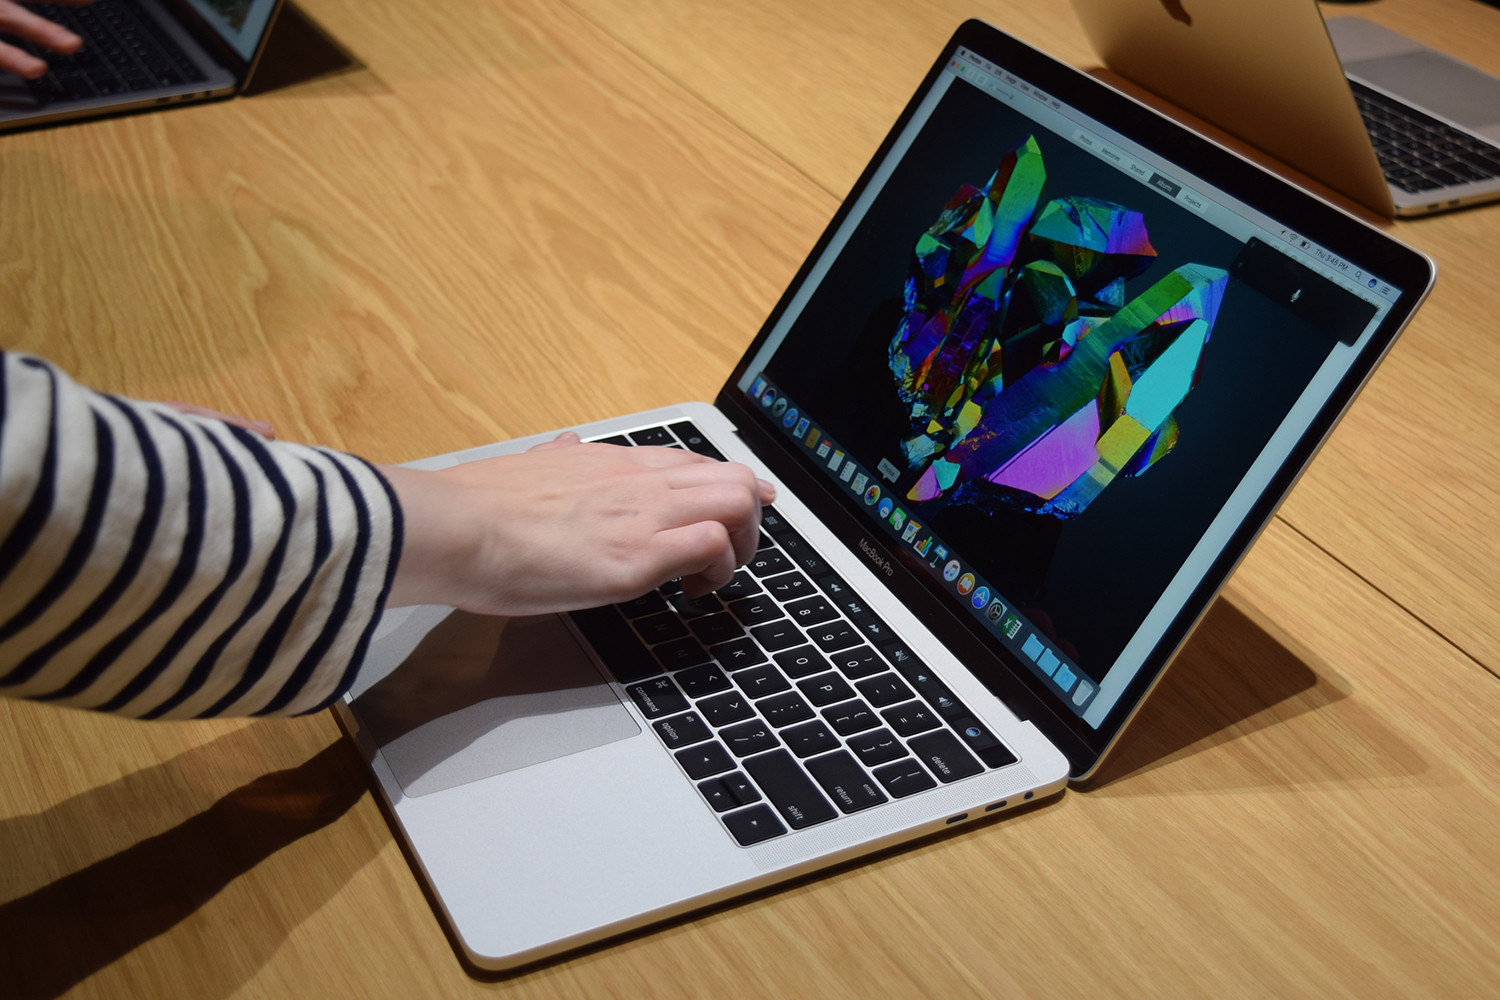 apple-macbook-pro-15-with-touch-bar-hands-on-0004-1500x1000.jpg